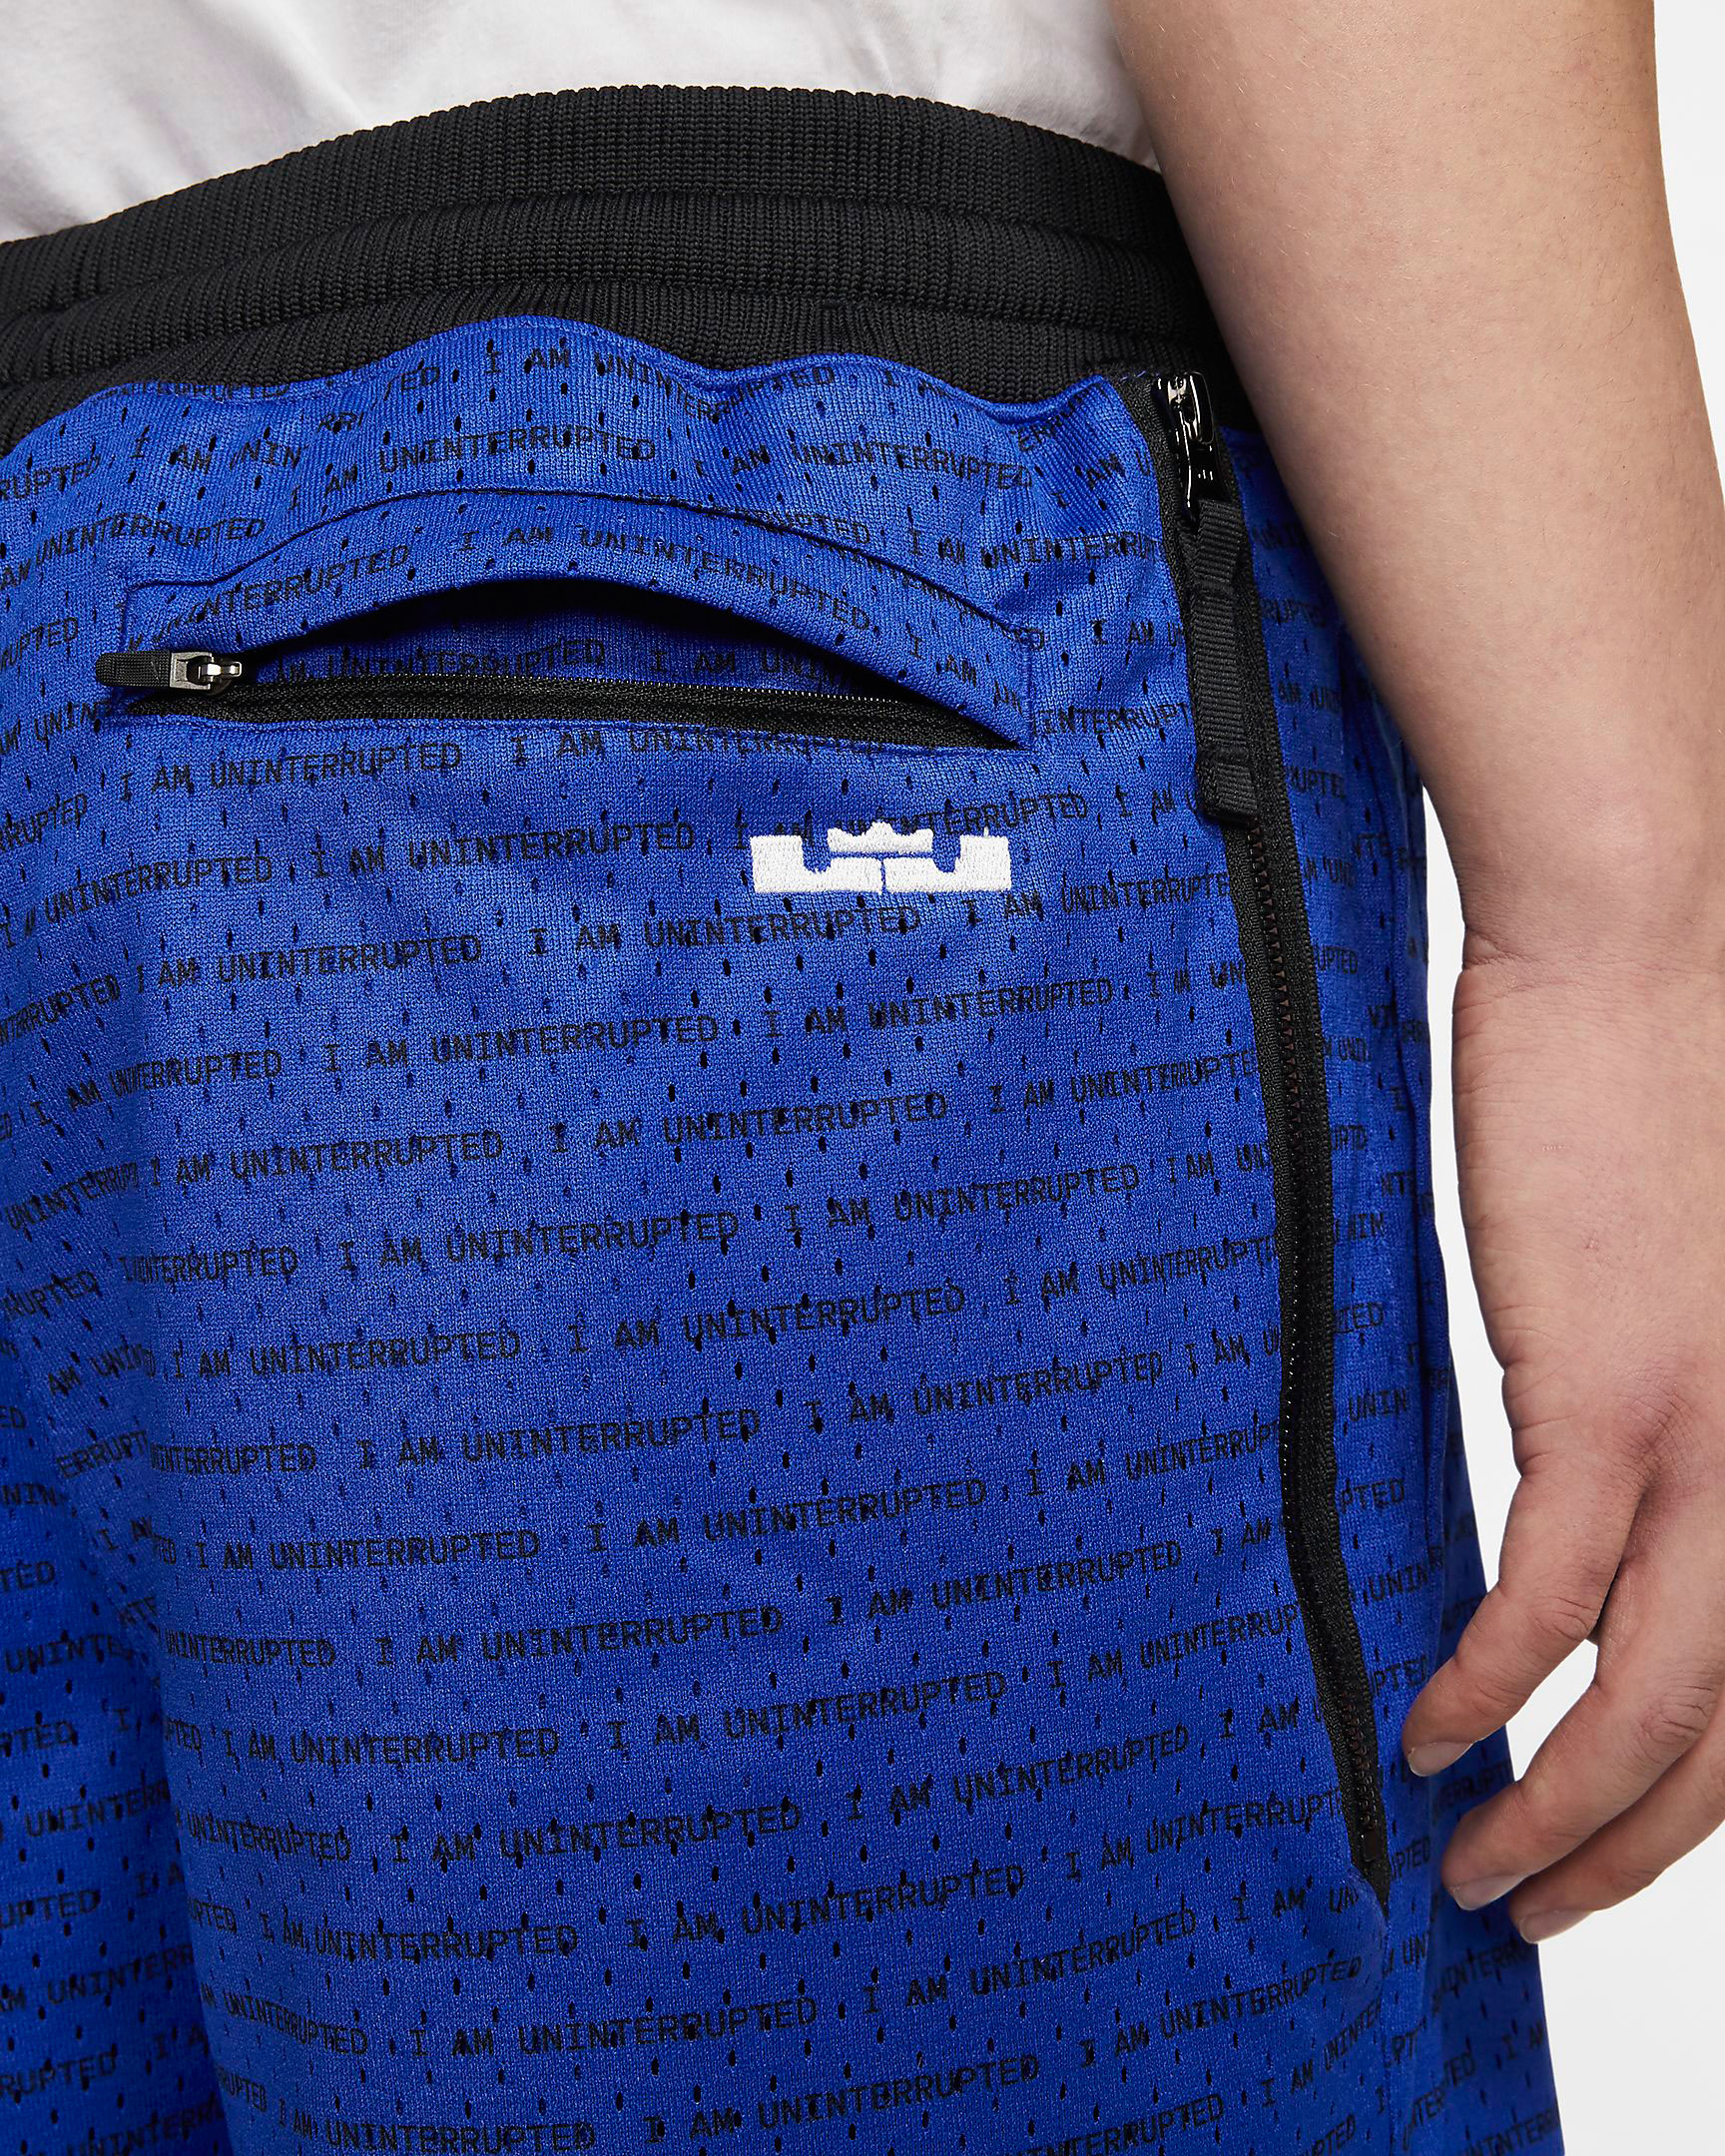 uninterrupted-nike-air-force-1-lebron-shorts-3